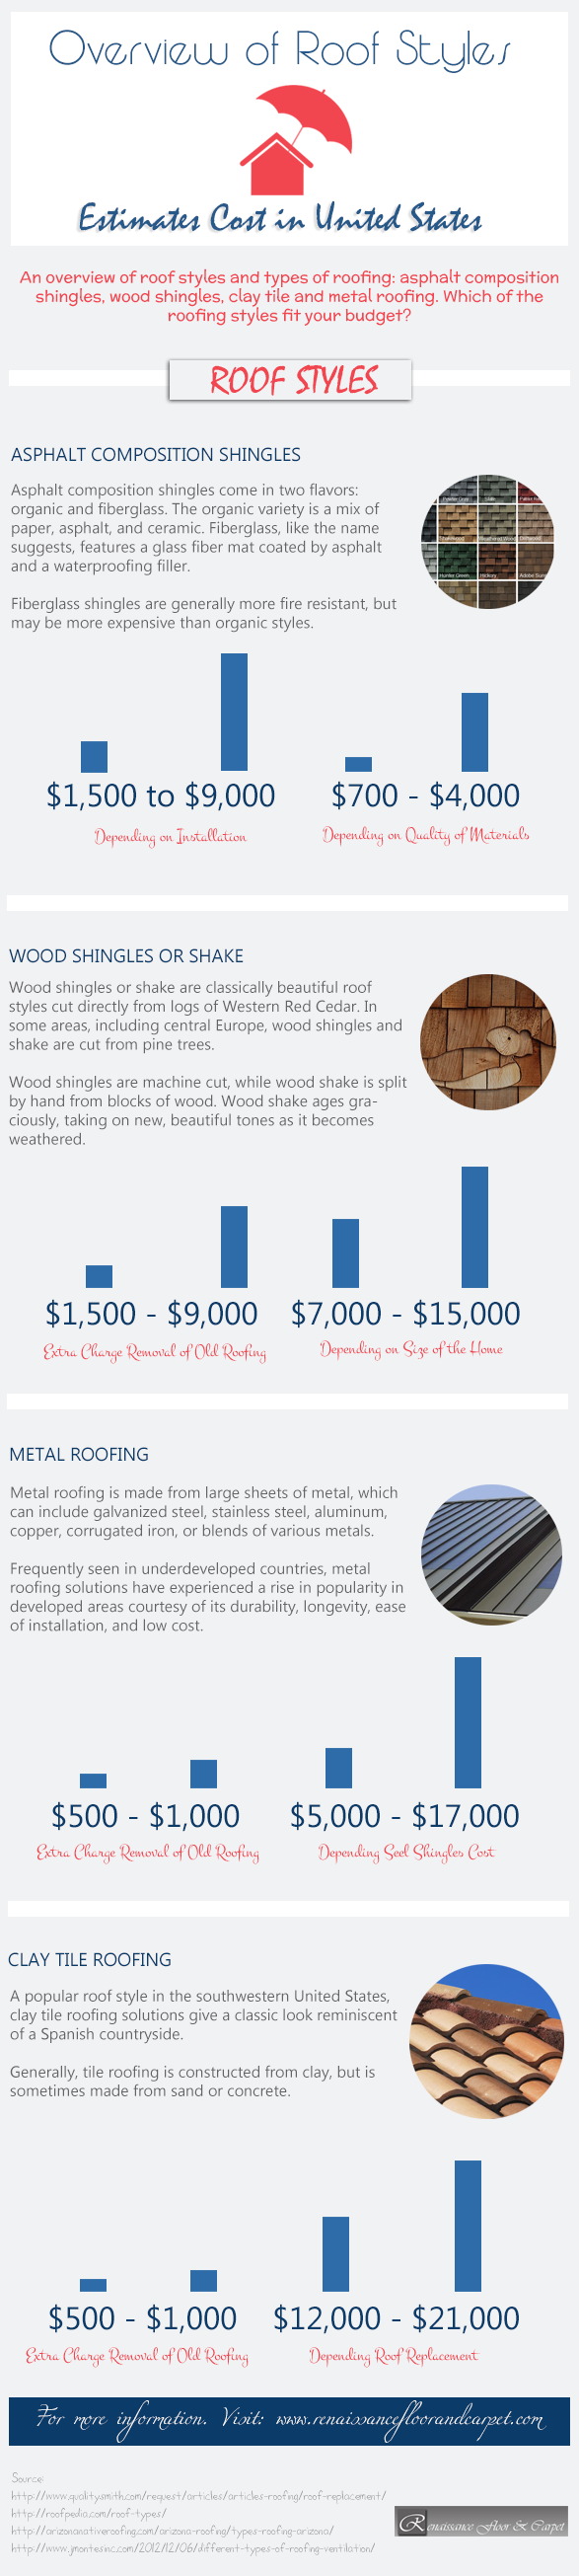 overview-of-roof-styles-estimates-cost-in-united-states_5255b6a97a3d0